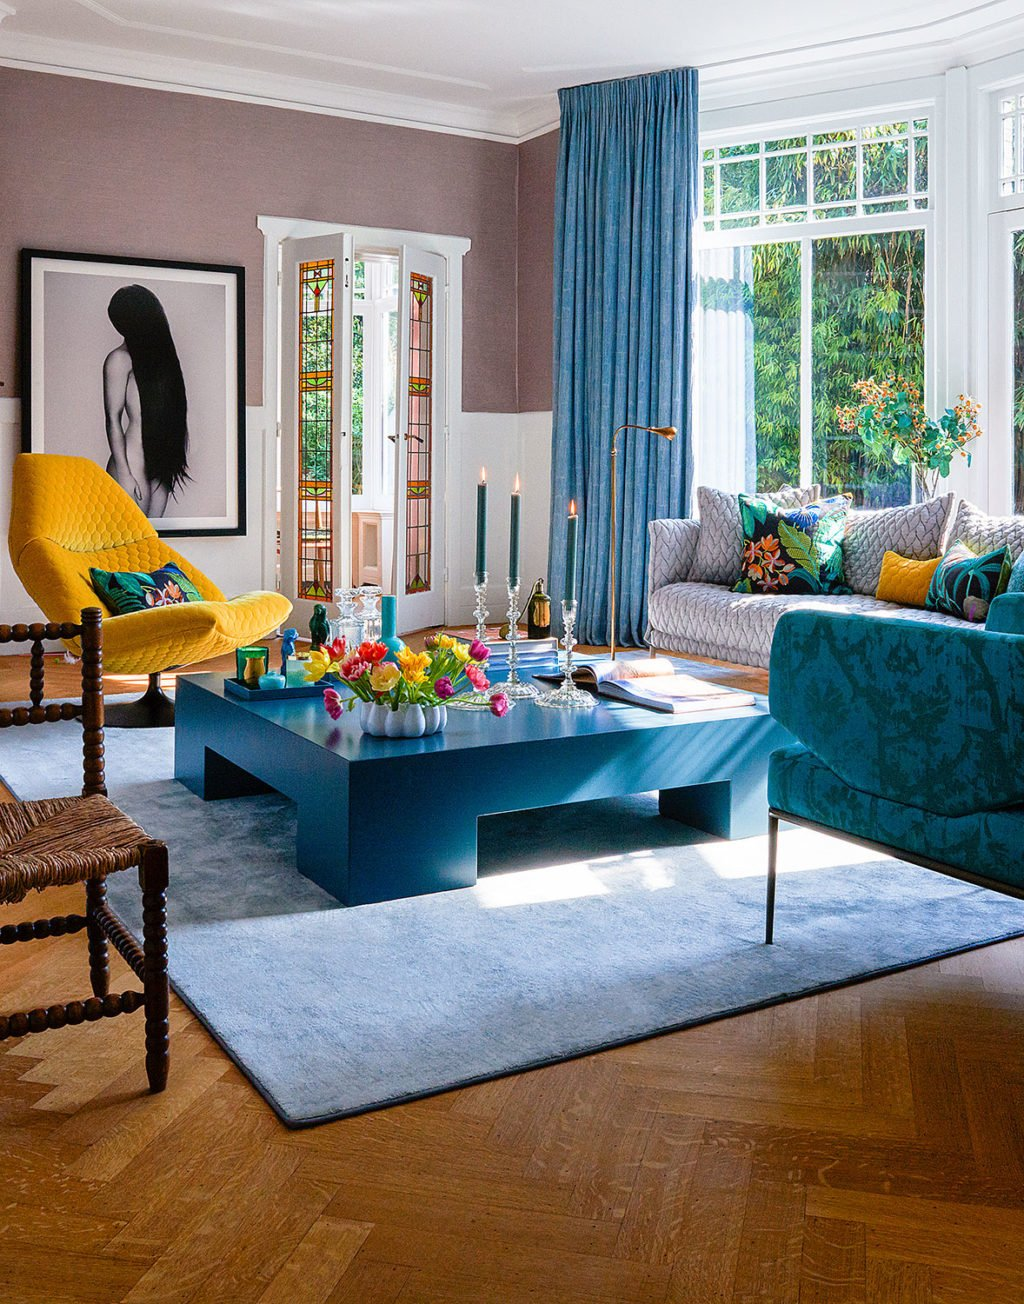 colorful livingroom yellow chair grey and blue sofa purple wallpaper blue table en curtains